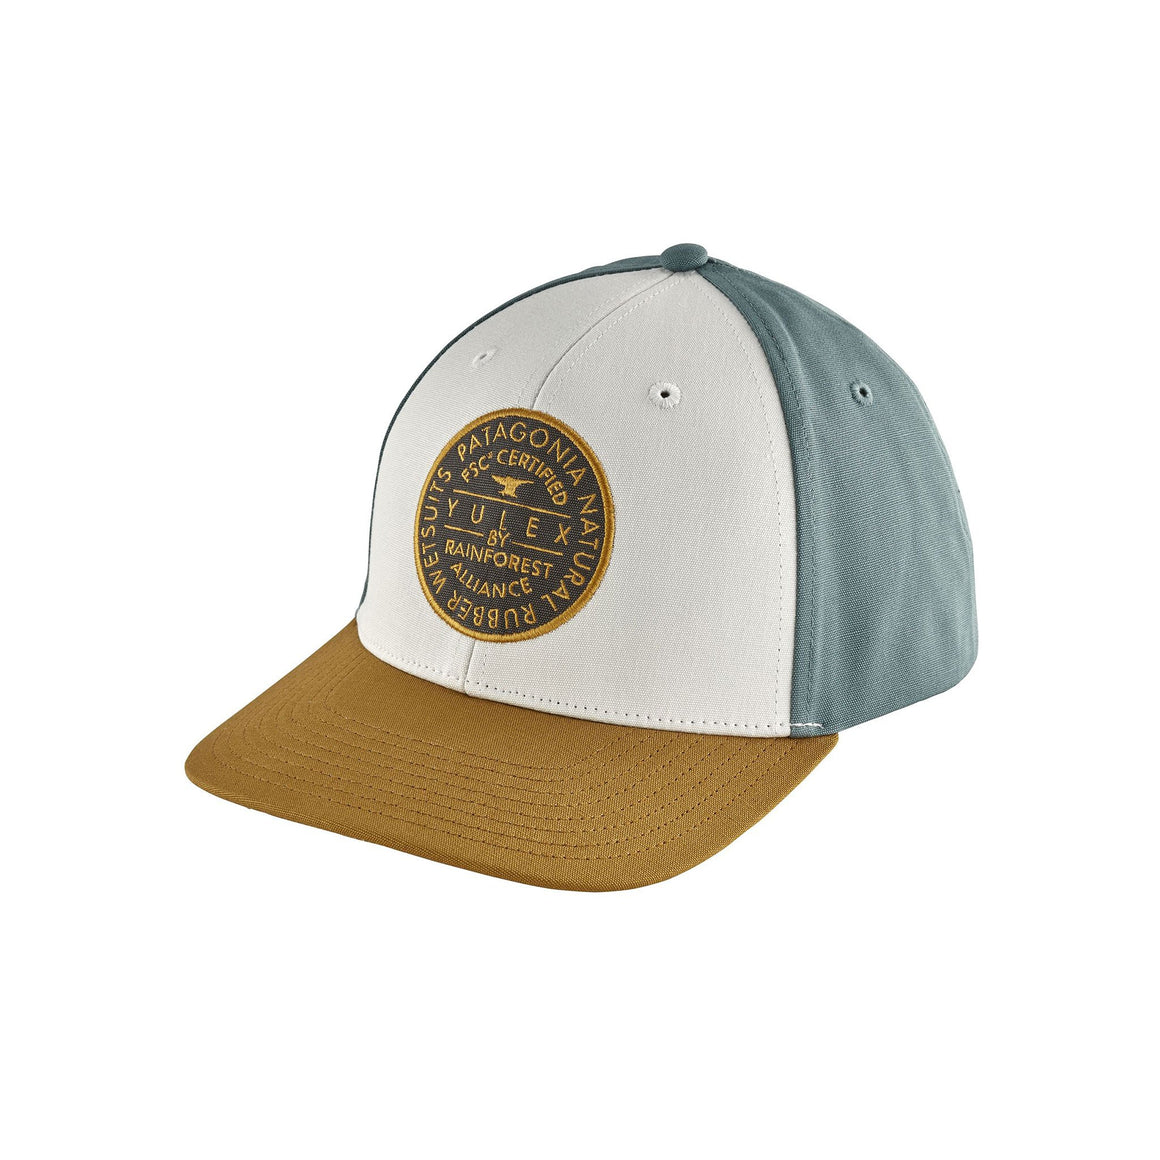 Patagonia Grow Our Own Roger That Hat - Unisex